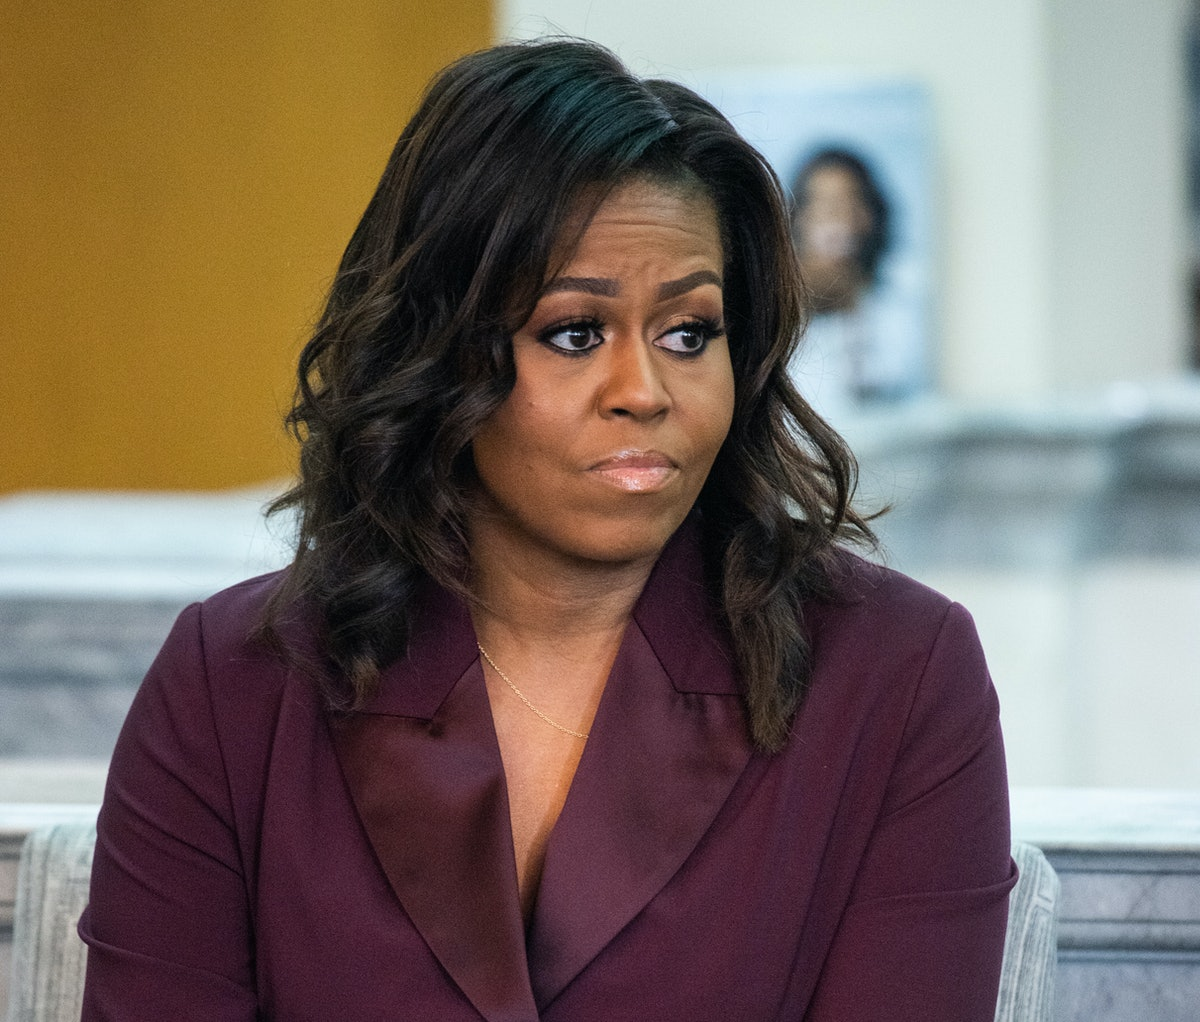 Michelle Obama hasn't been shy about sharing where she disagrees with President Trump.